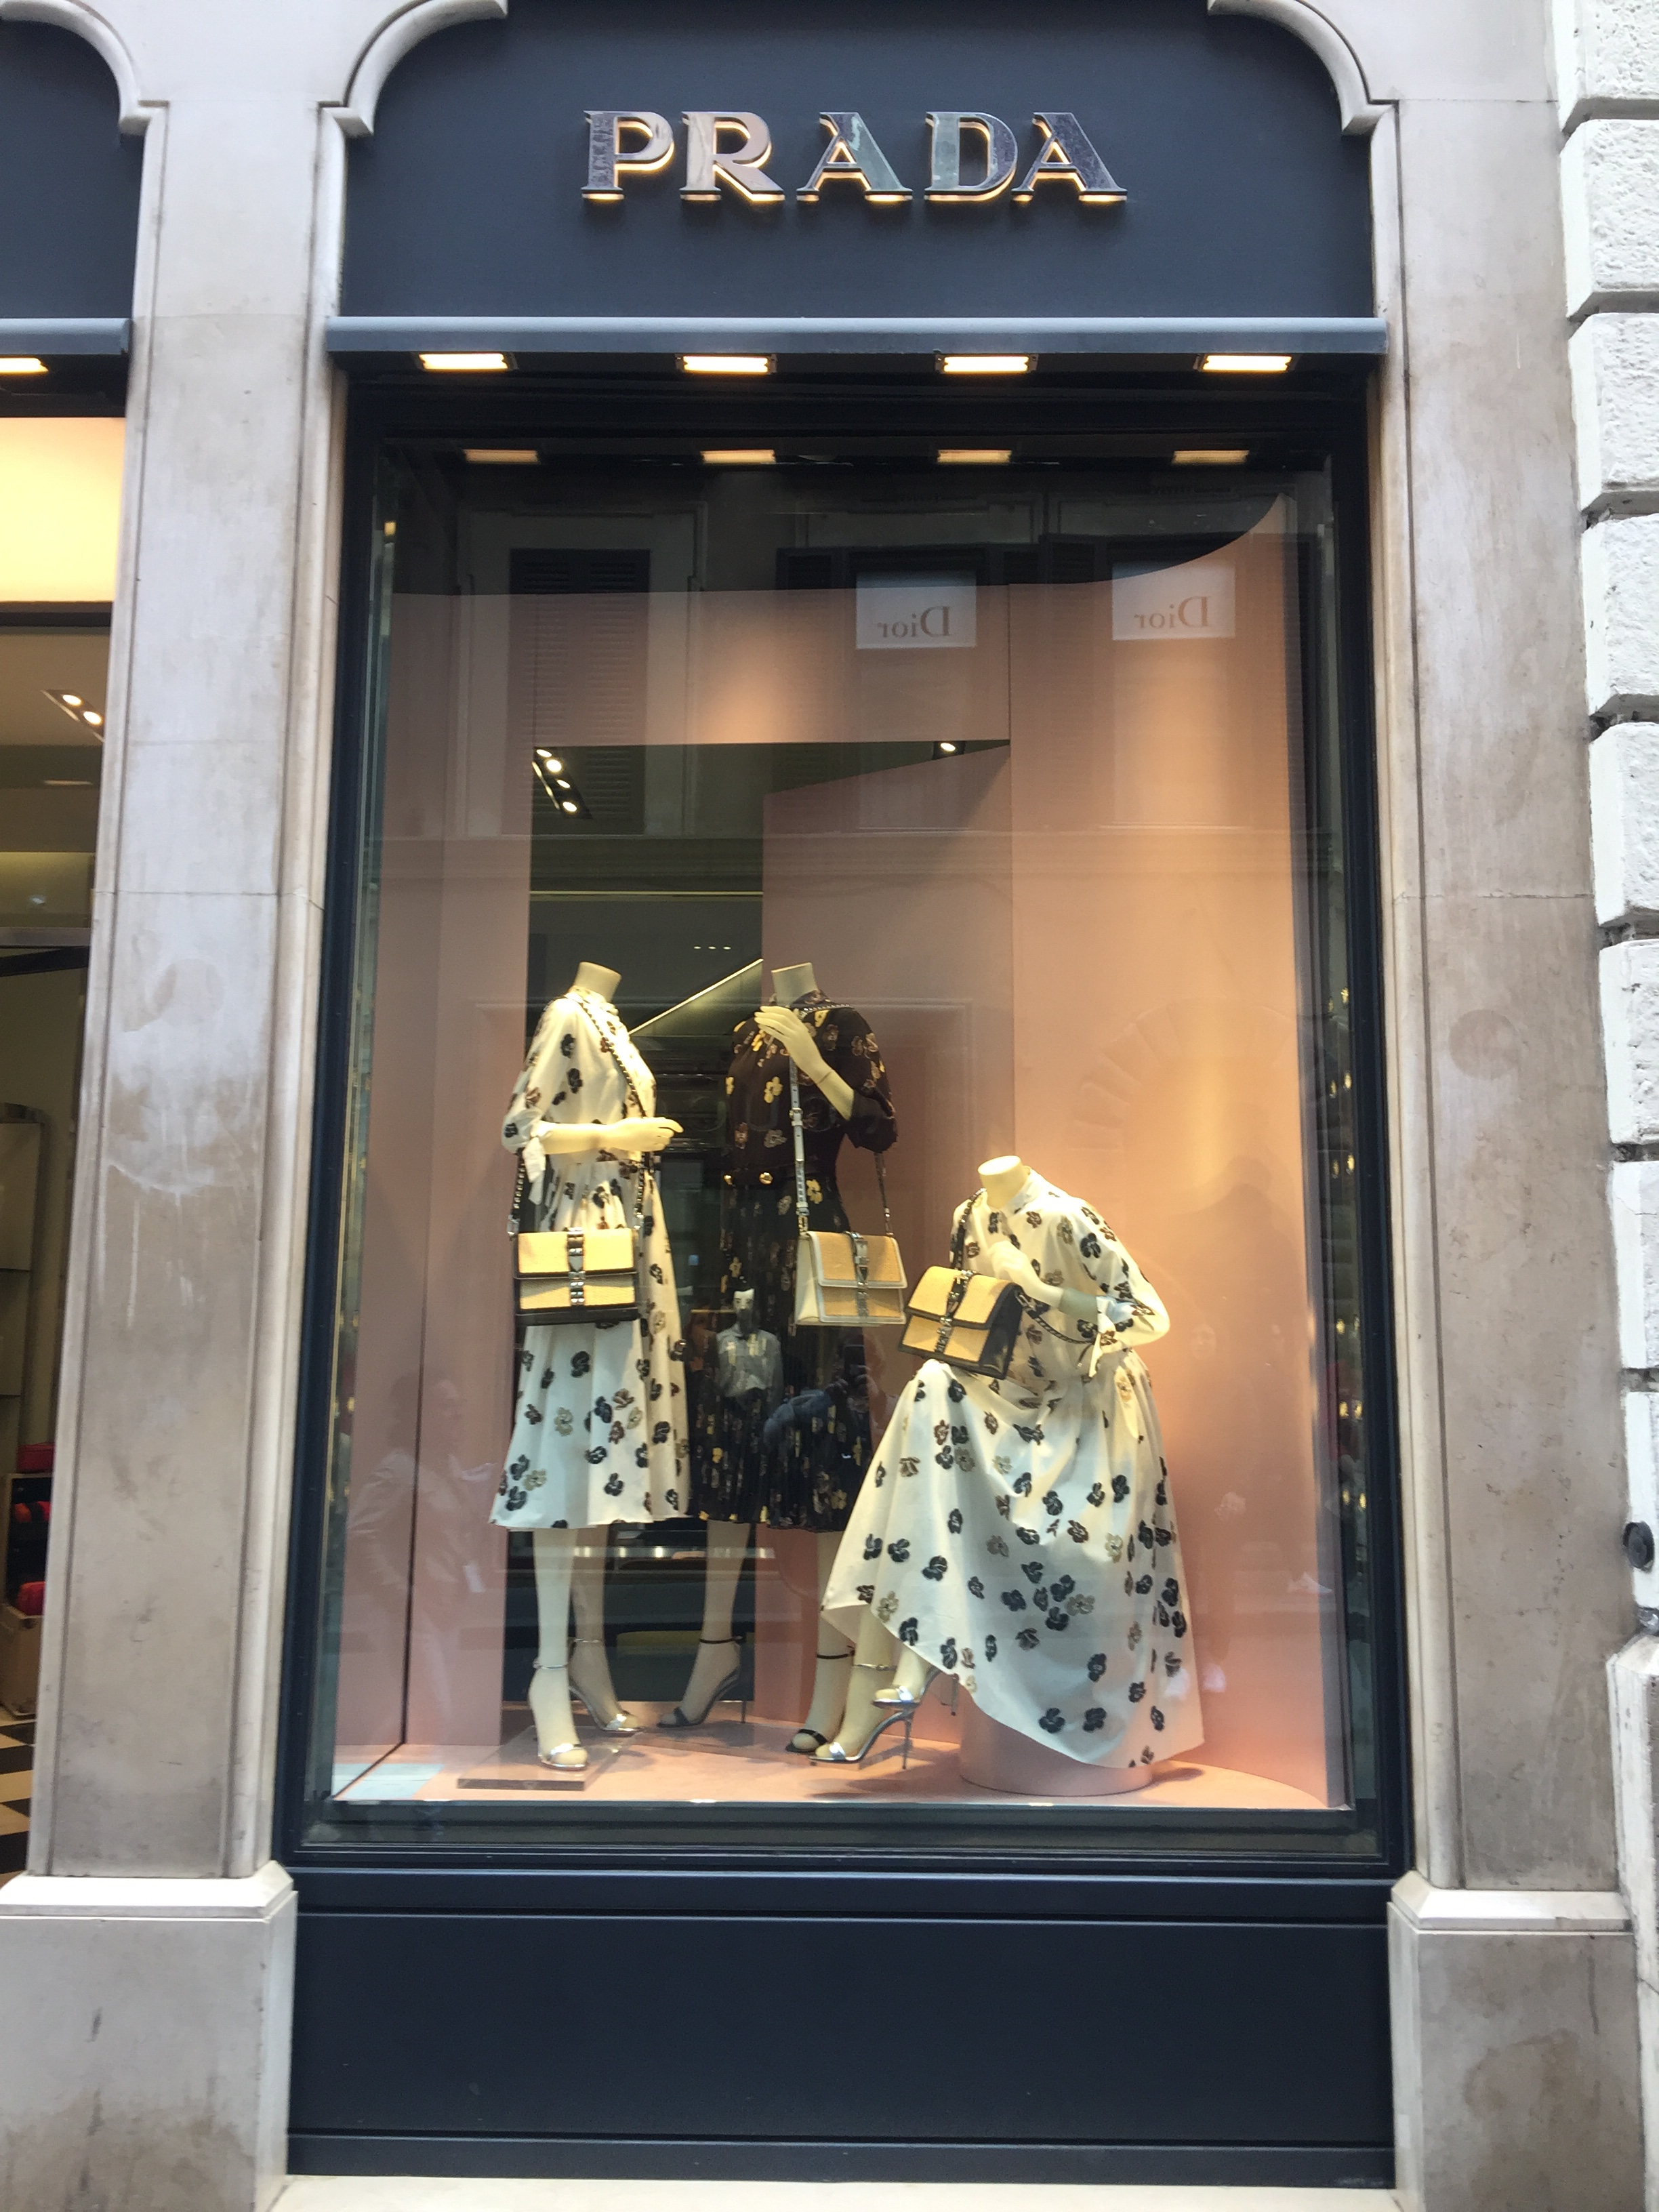 Prada-May 2019- Roma Luxury- Shopping in Rome